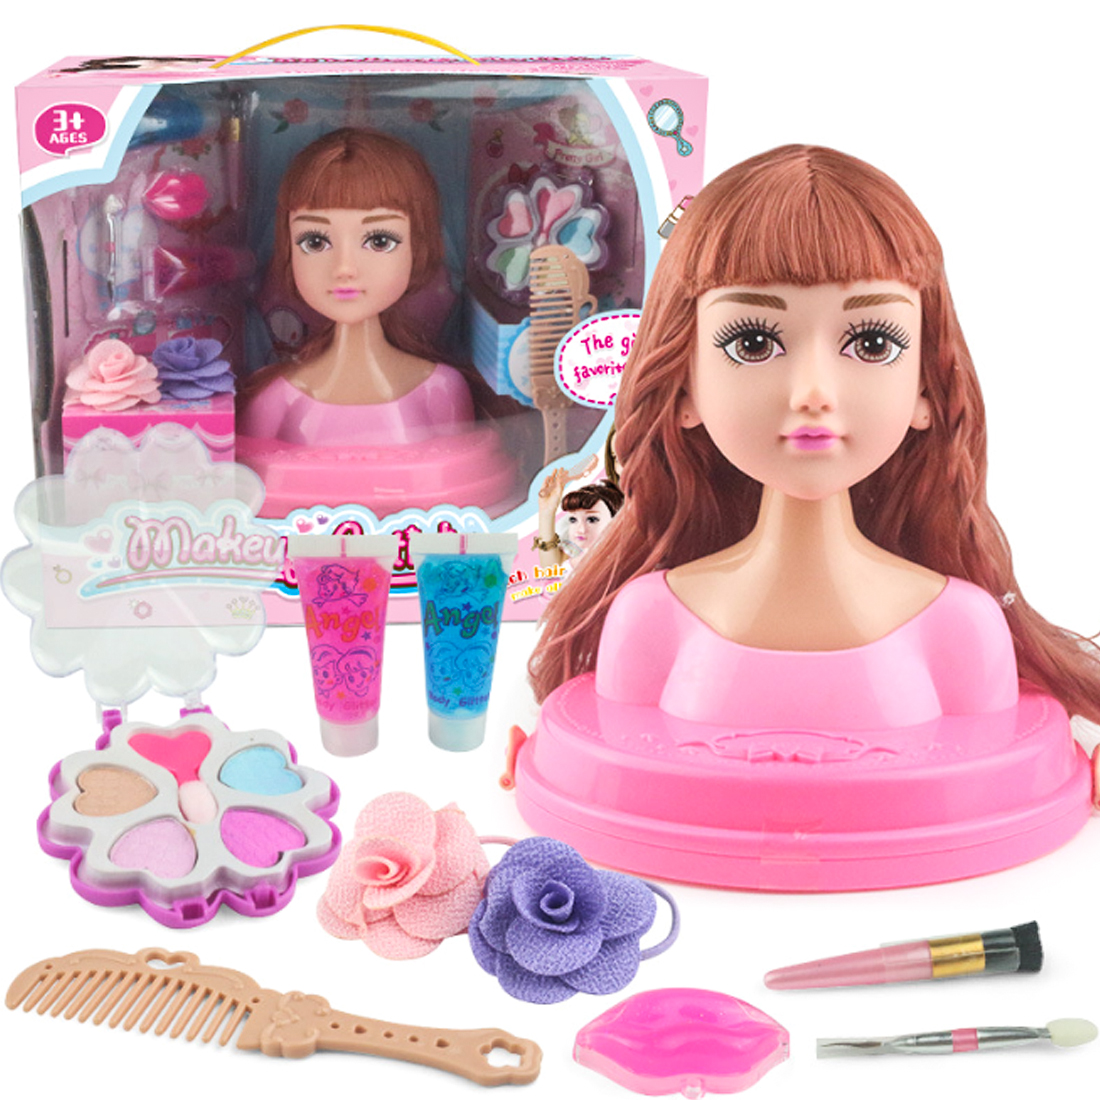 Children Head Model Half Body Doll Toy Makeup Hairstyle Beauty Simulation Plastic Girls Gift Toy - Random Color